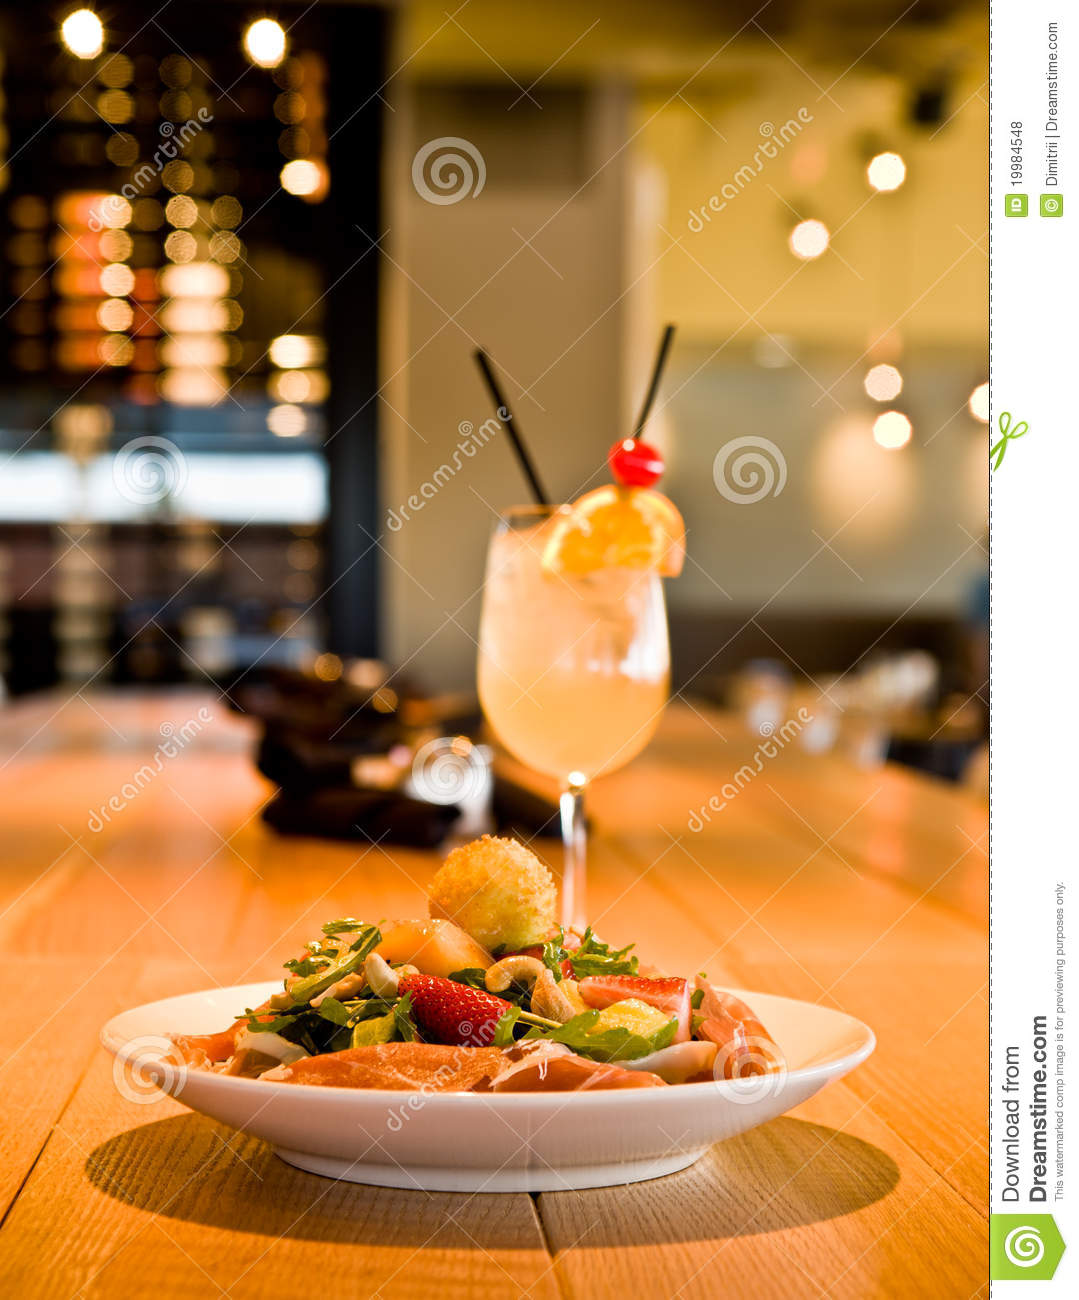 Food And Beverage Stock Photo Image Of Nutrition Drink